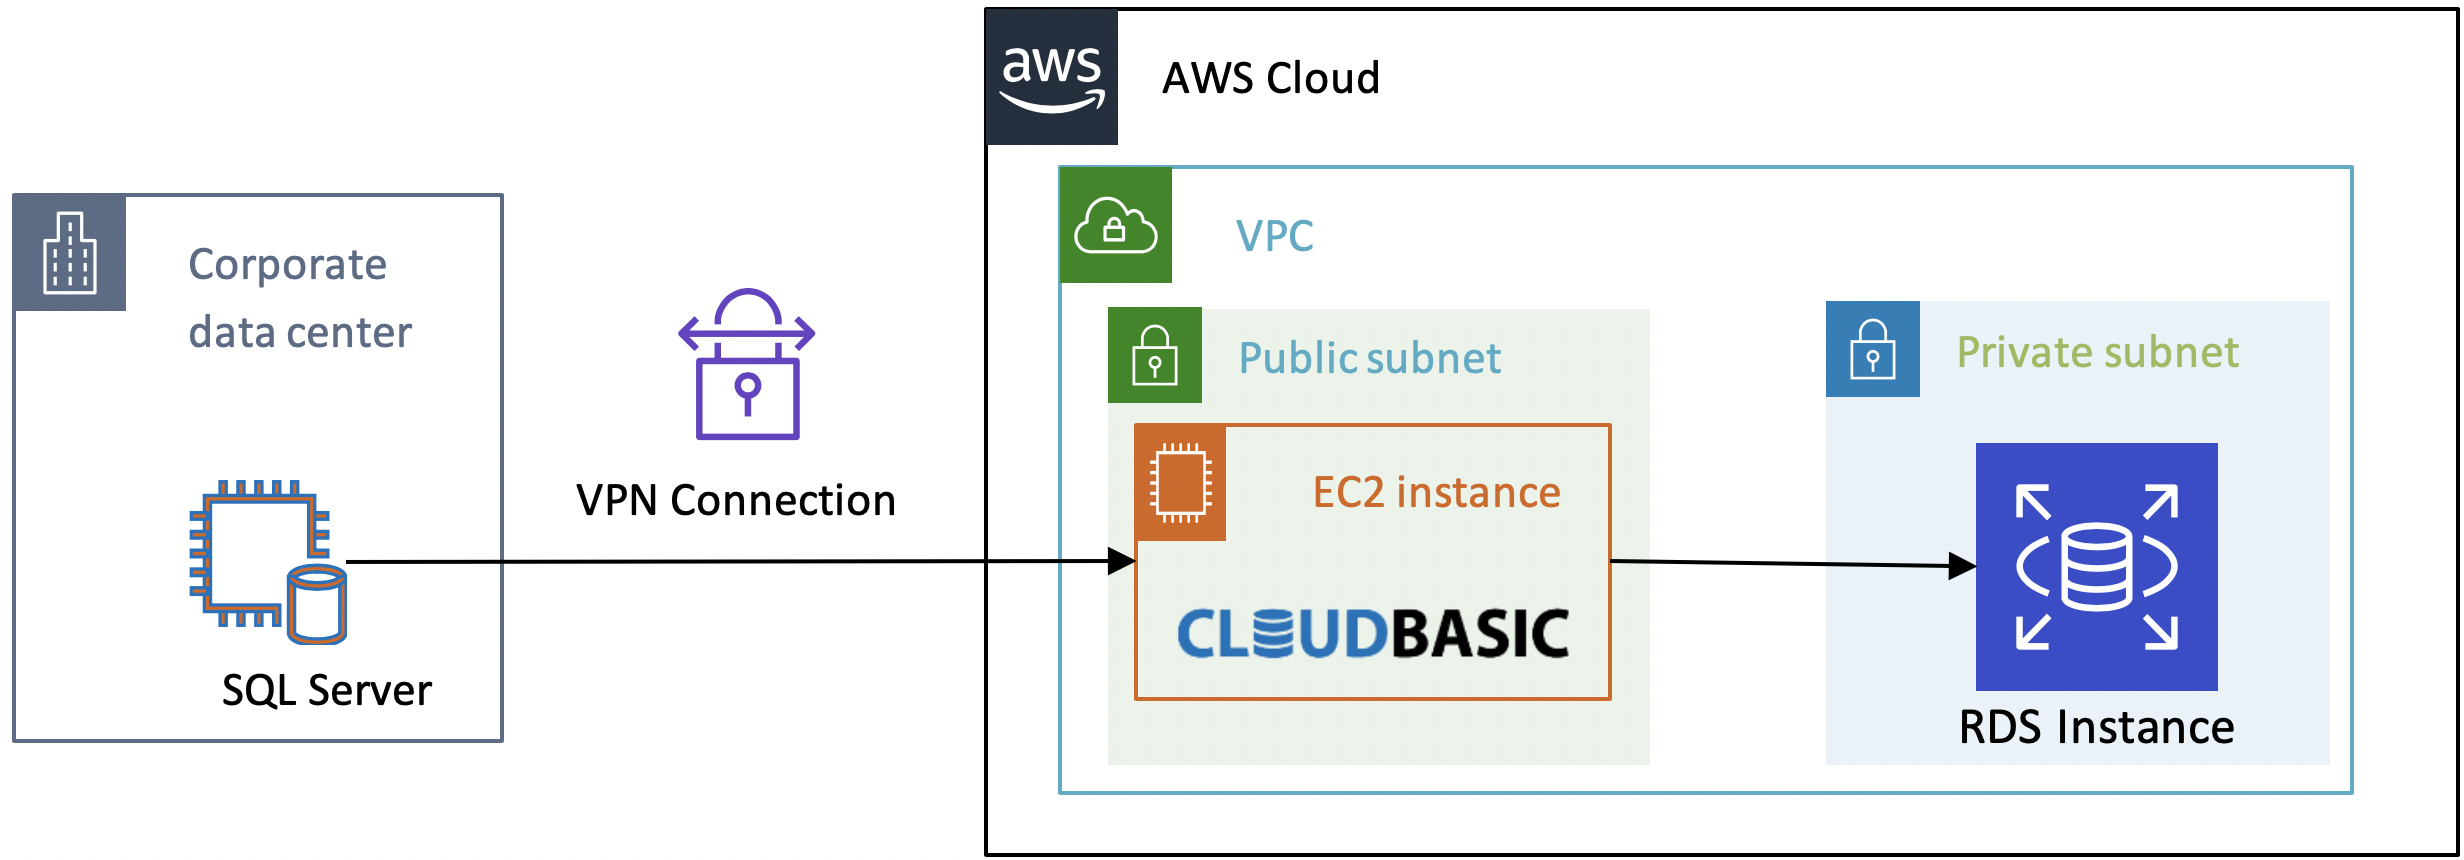 CloudBasic RDS365 - VPC Peering Security Diagram